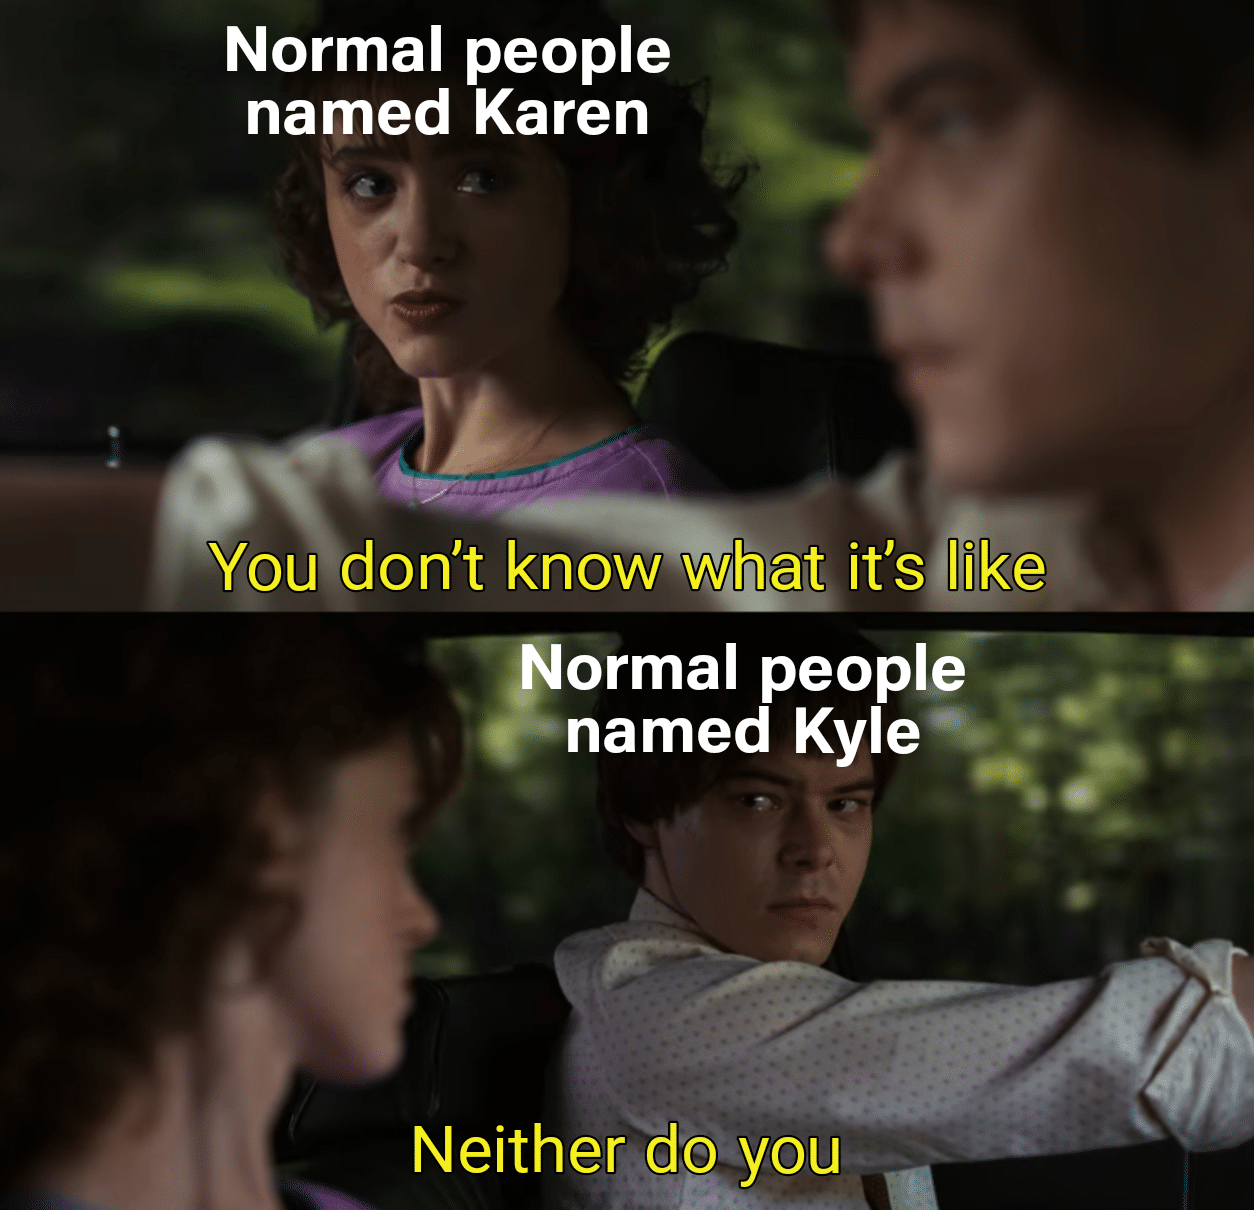 Funny, Karen, Kevin, Chad, DcsCZ, Daniel other memes Funny, Karen, Kevin, Chad, DcsCZ, Daniel text: Normal people named Karen You don't know what it's/like Normal people named Kyle Neither do you